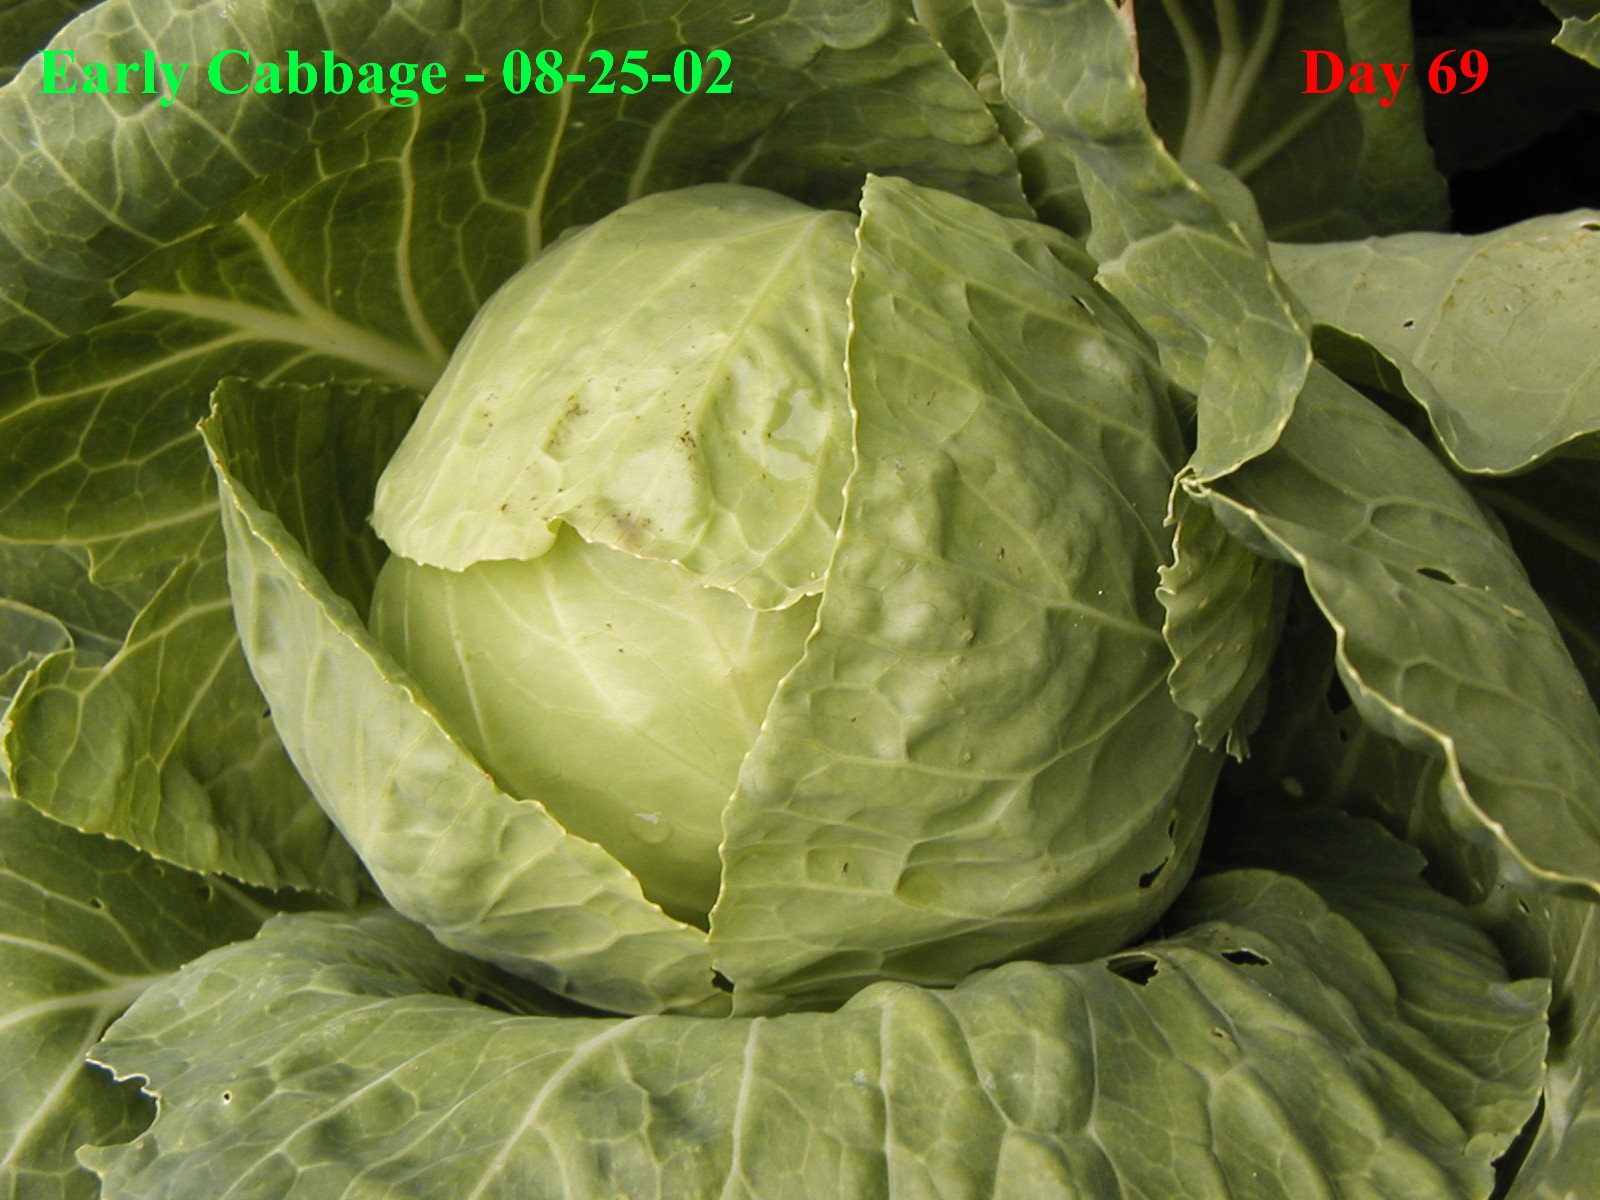 Images of Cabbage Plant Early Cabbage Plant at Day 69